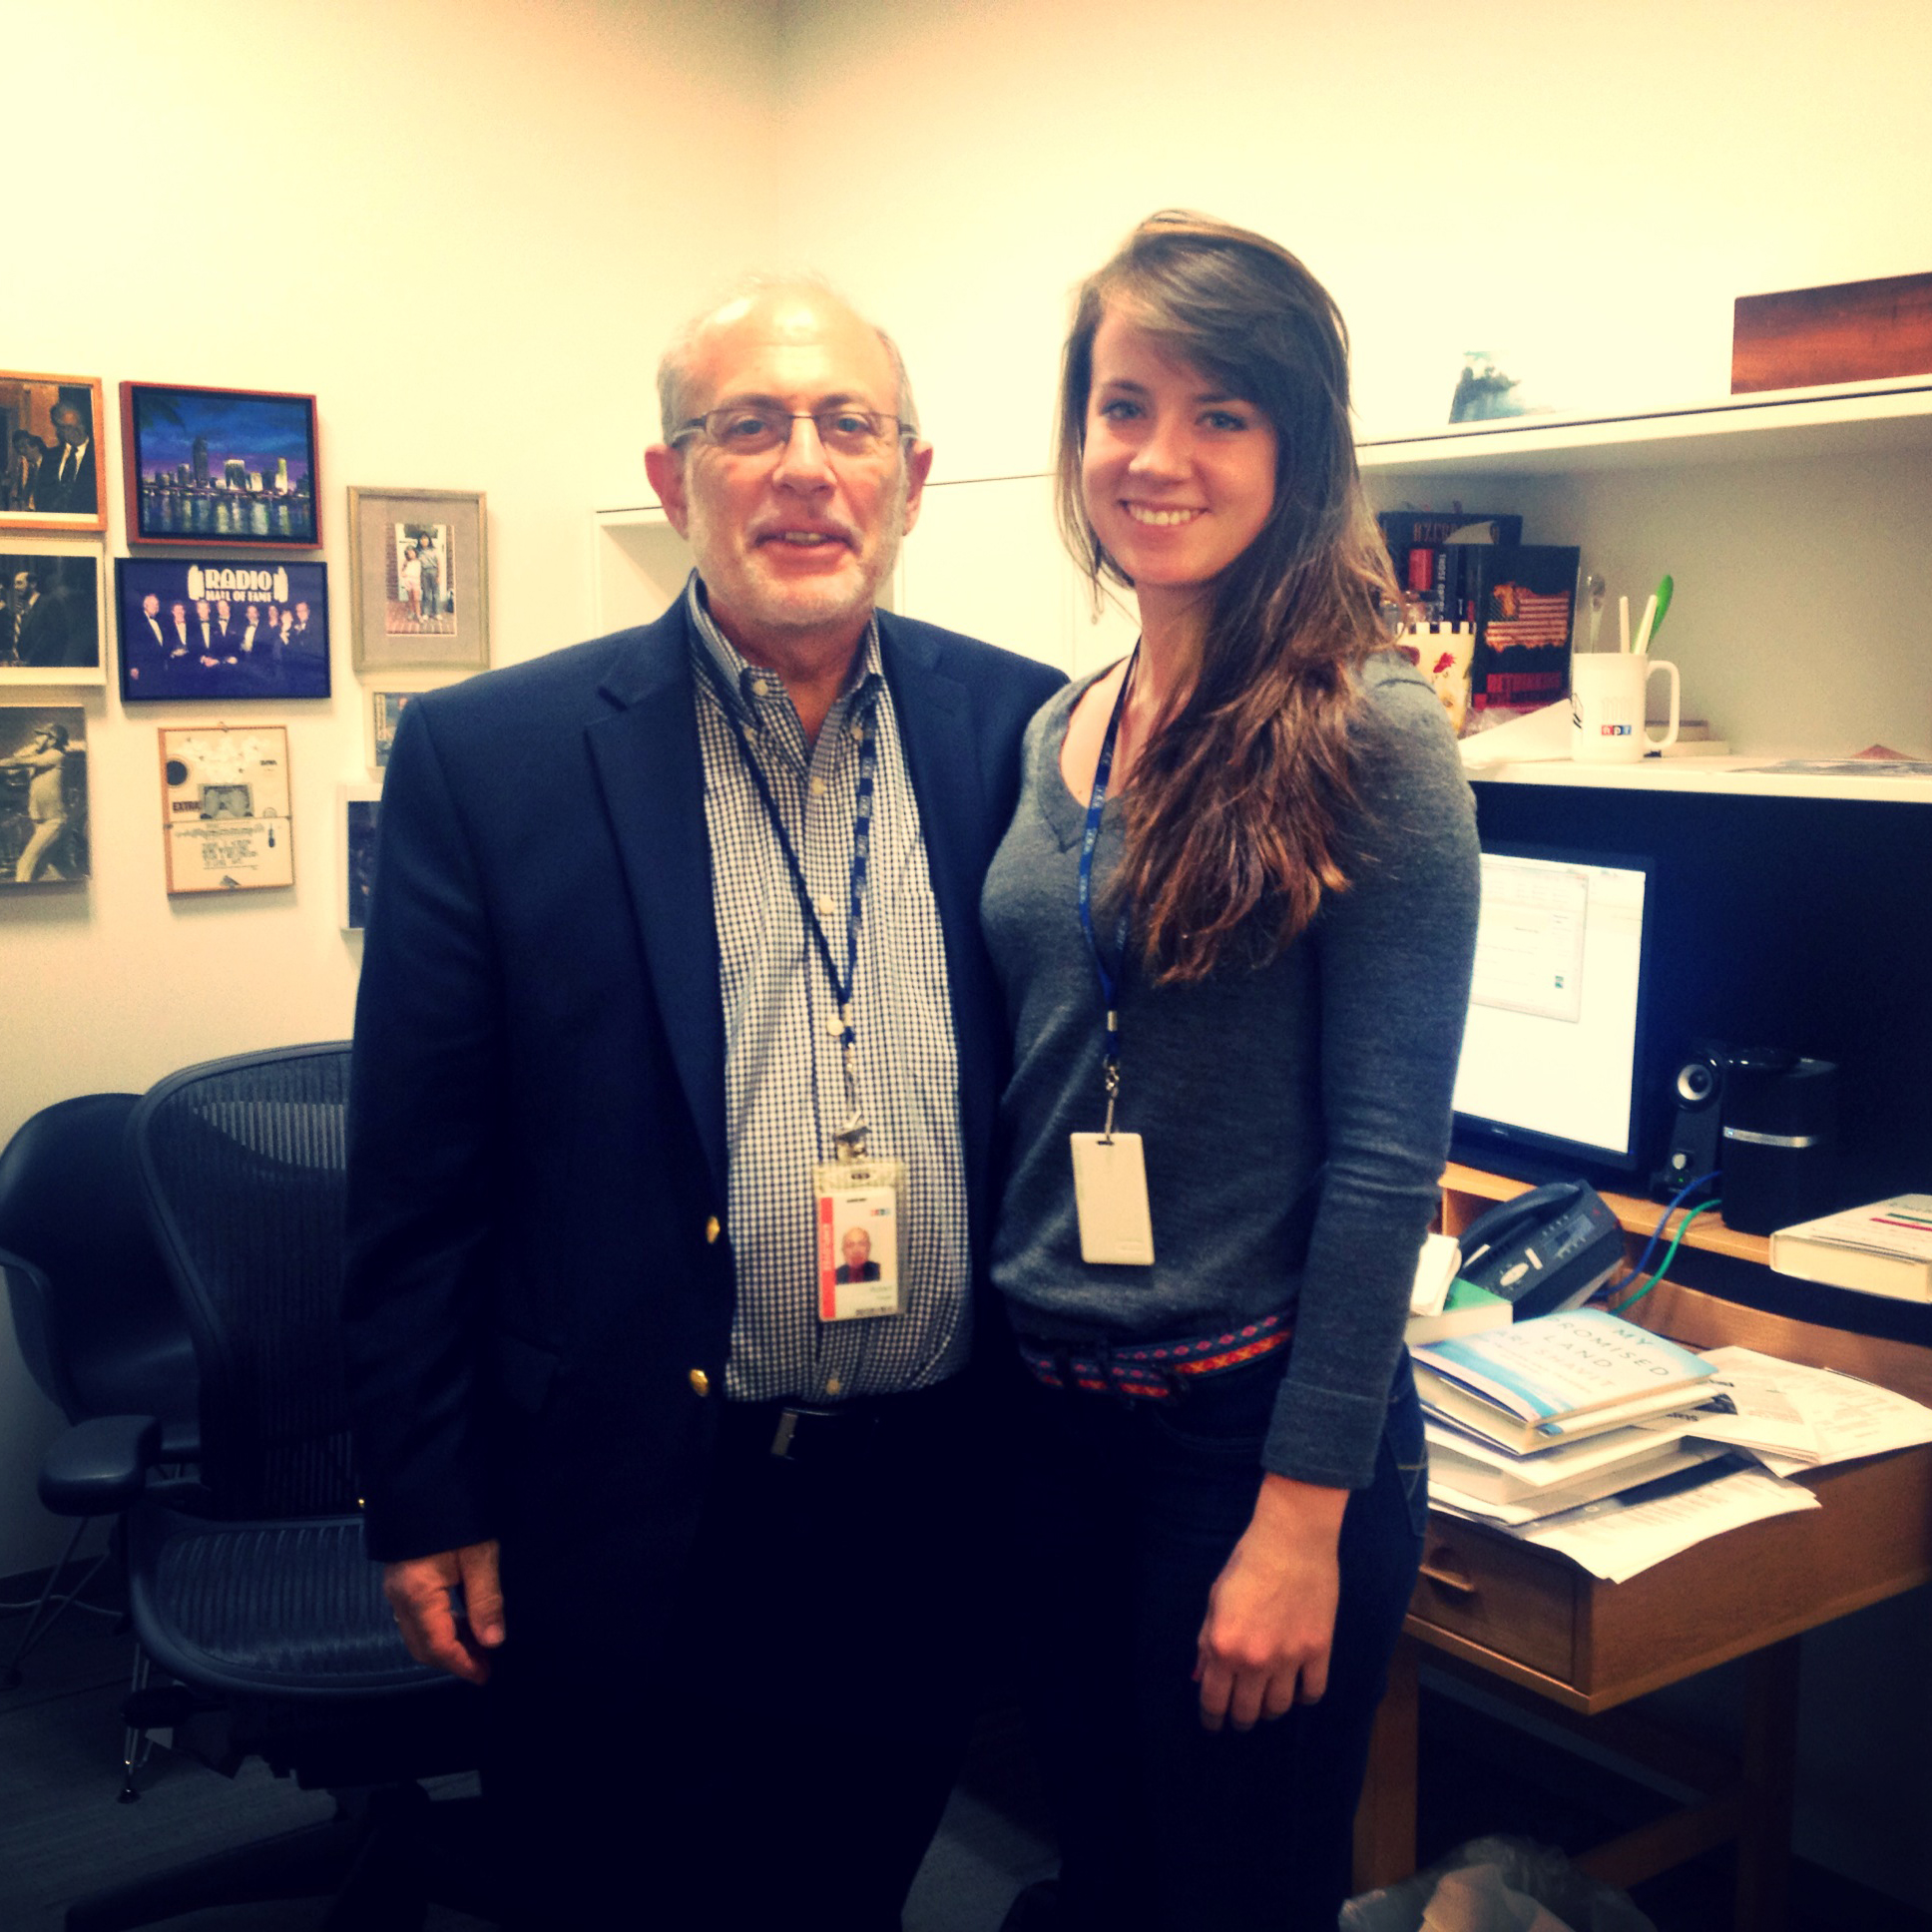 All Things Considered Host Robert Siegel with All Things Considered Intern Annabelle Ford. (posted by @annabellejford)